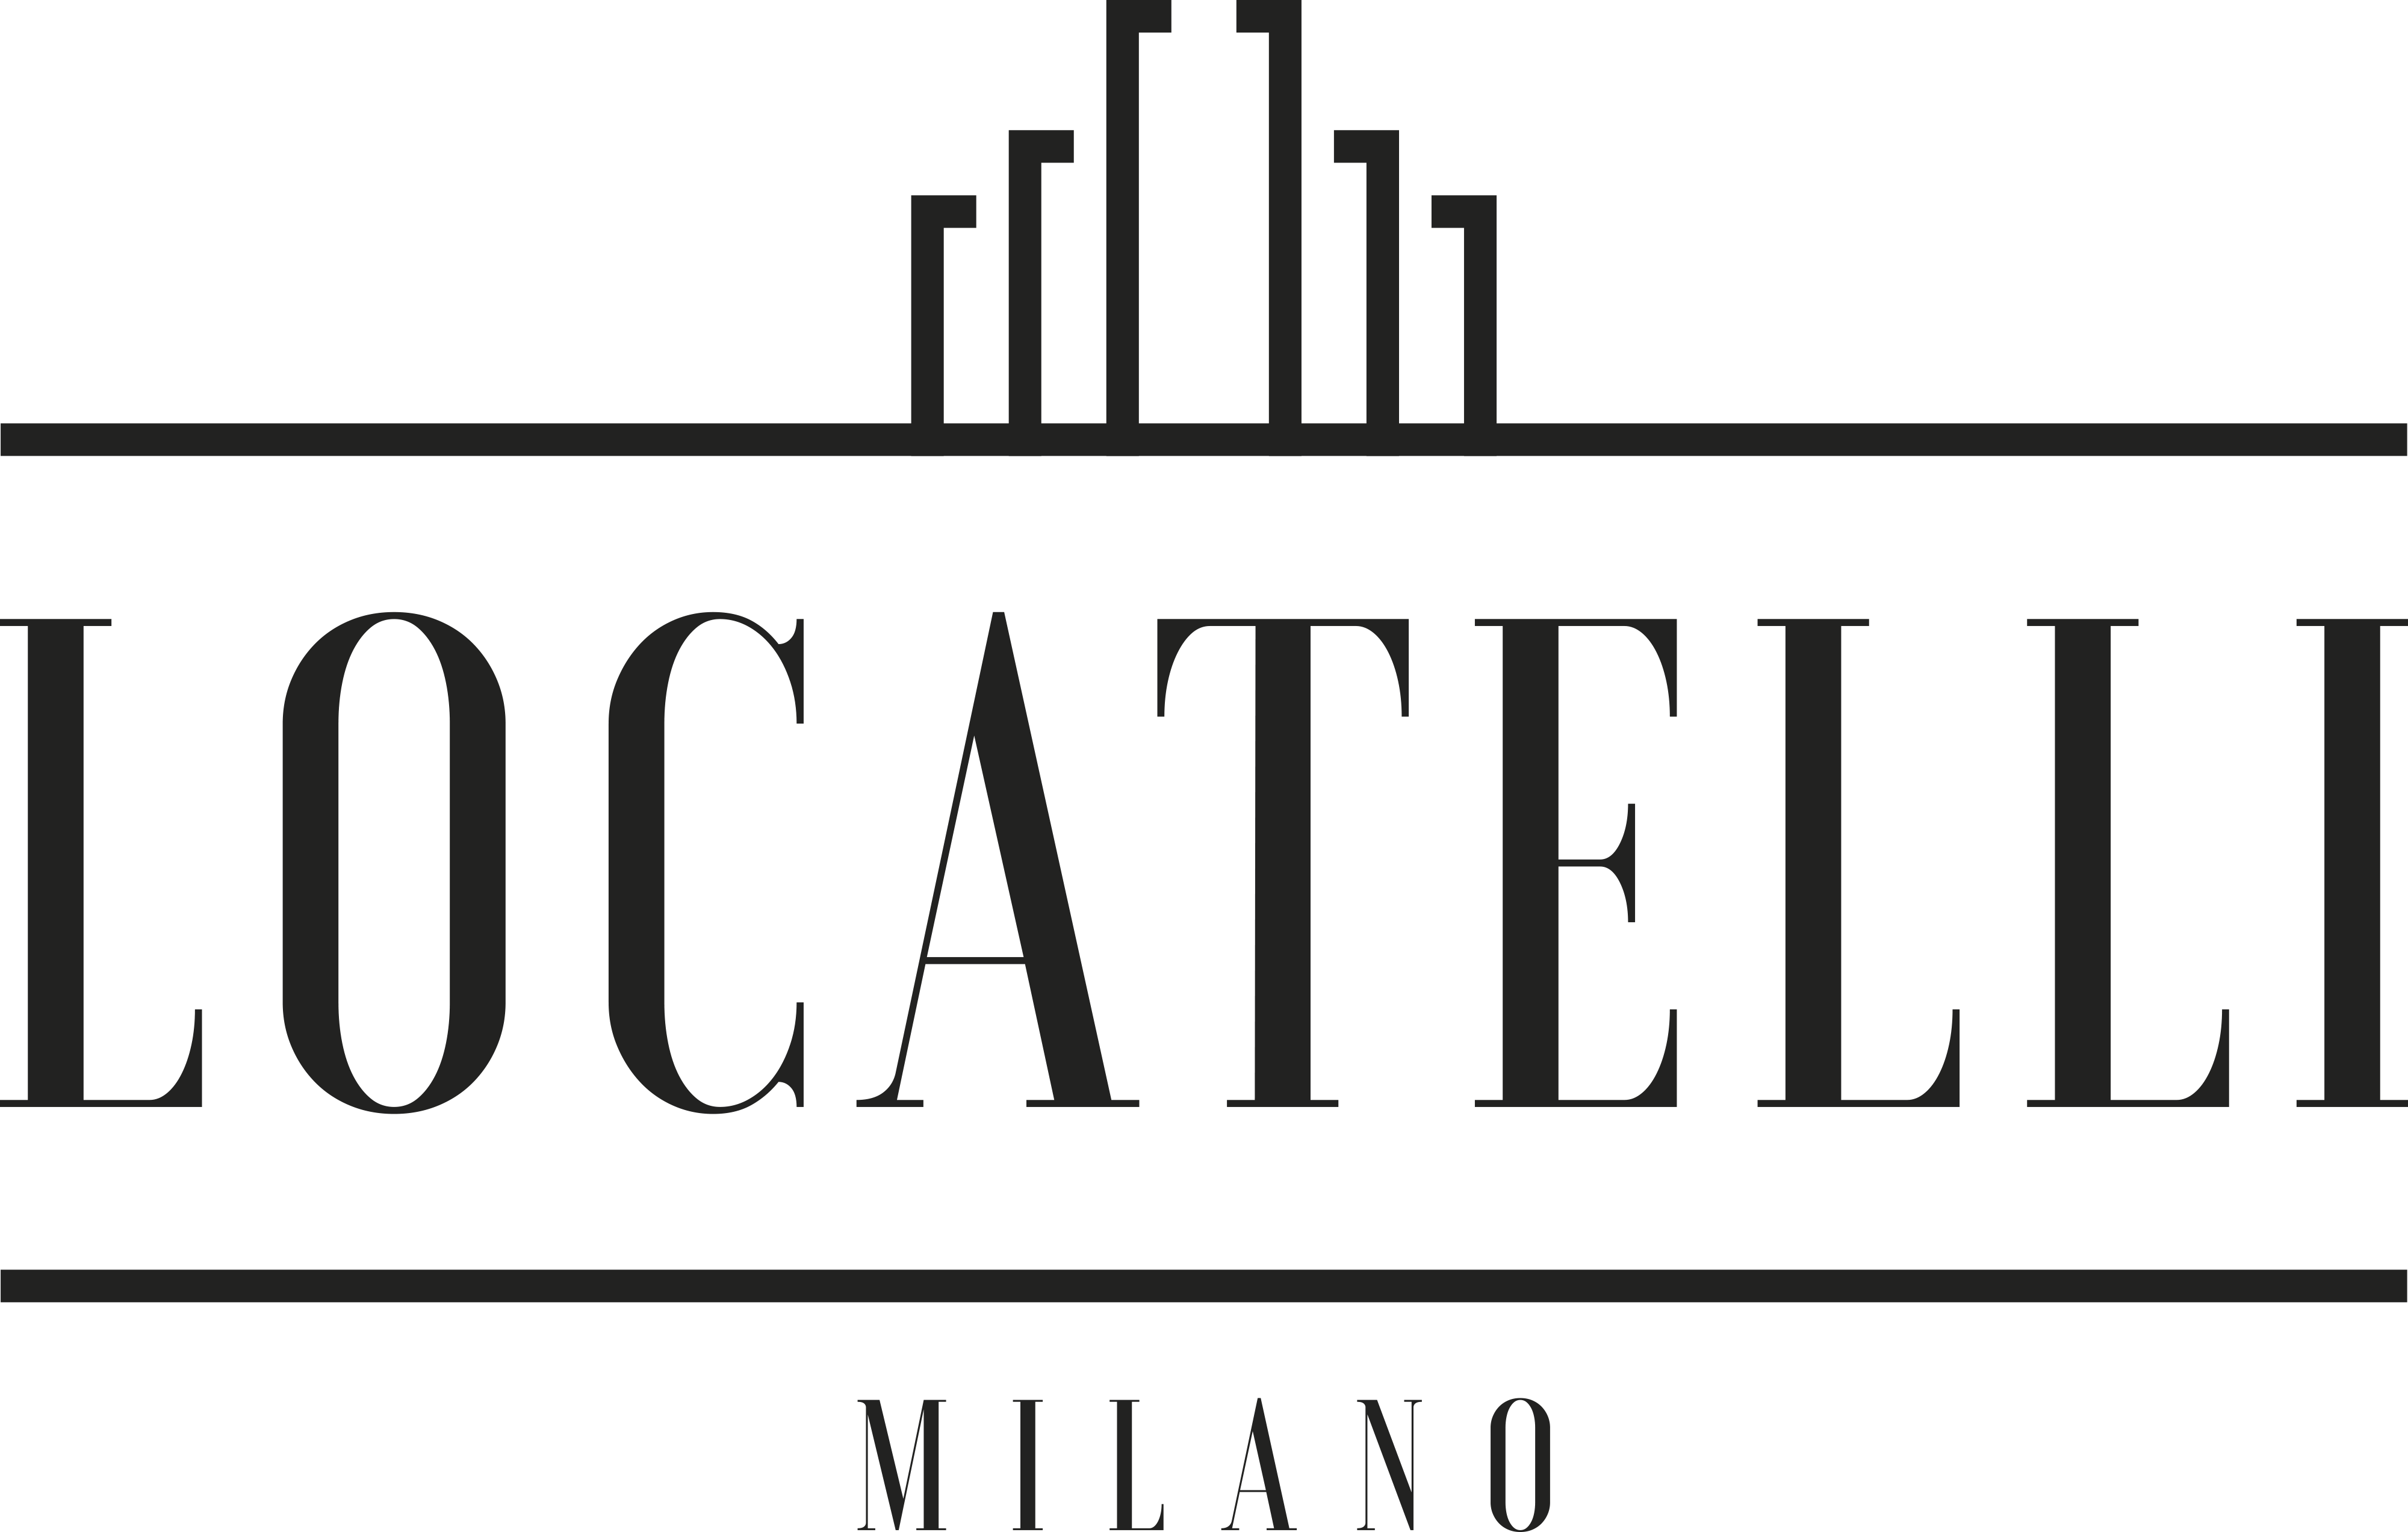 Locatelli Milano Logo